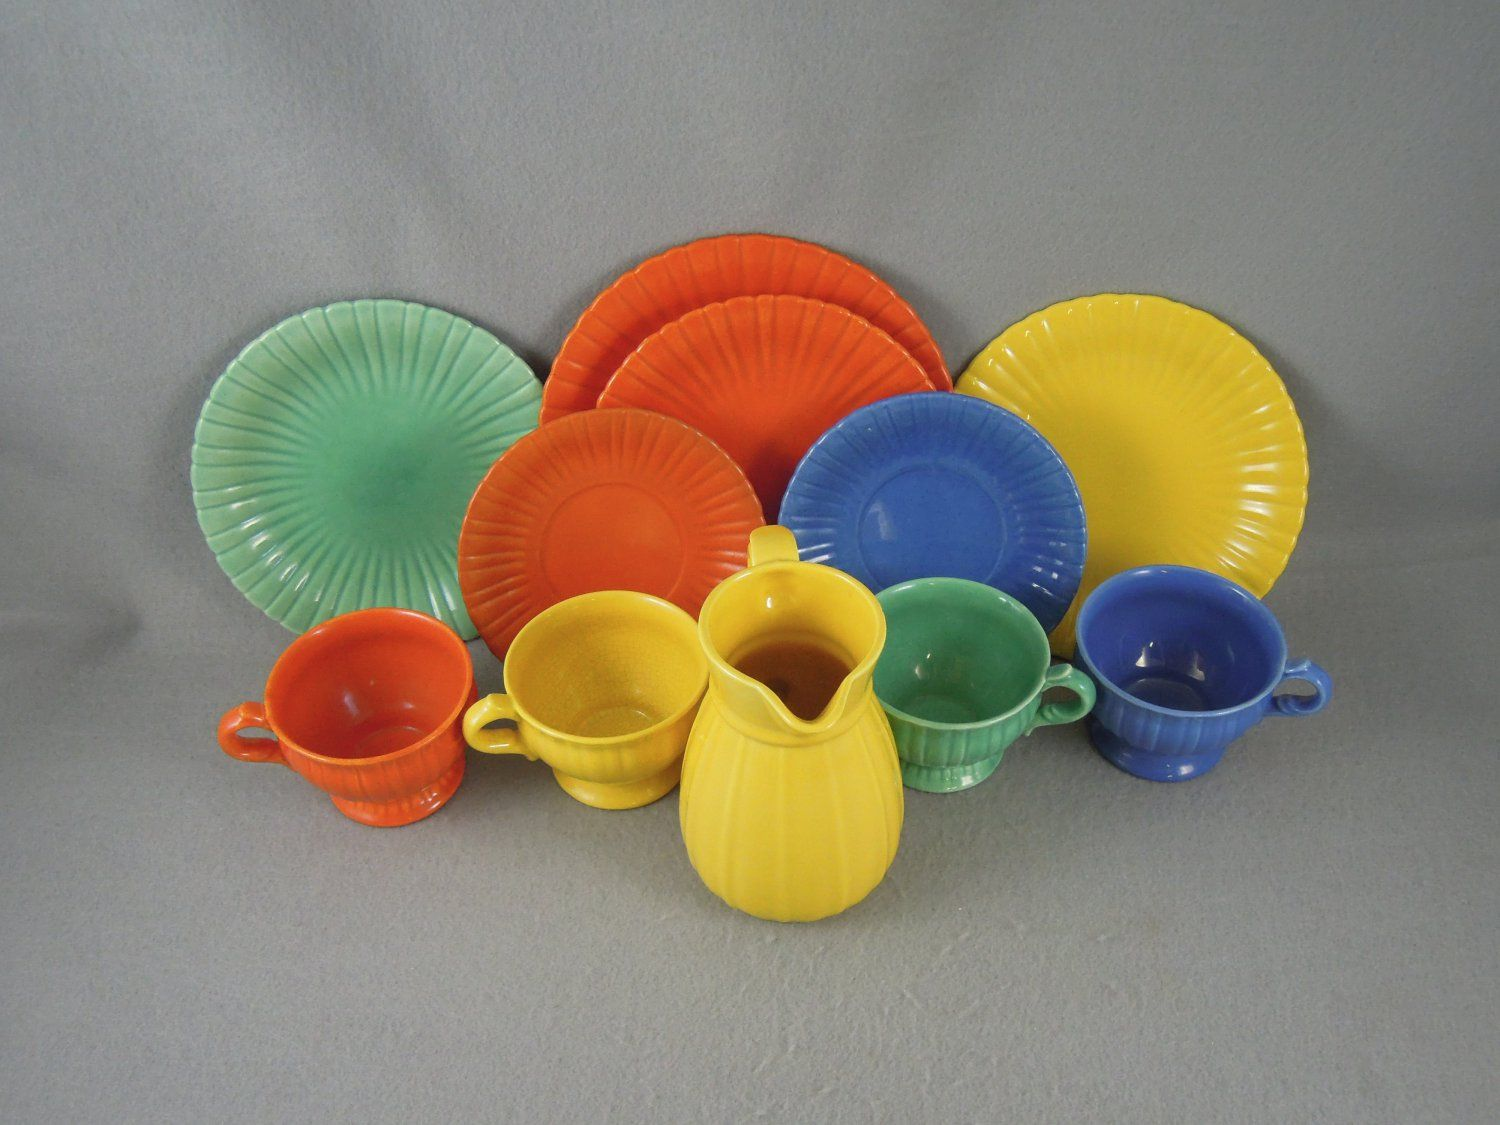 Stangl Pottery Pitcher Cups Plates #1388 & Stangl Pottery Pitcher Cups Plates #1388 | Stangl Art Pottery ...